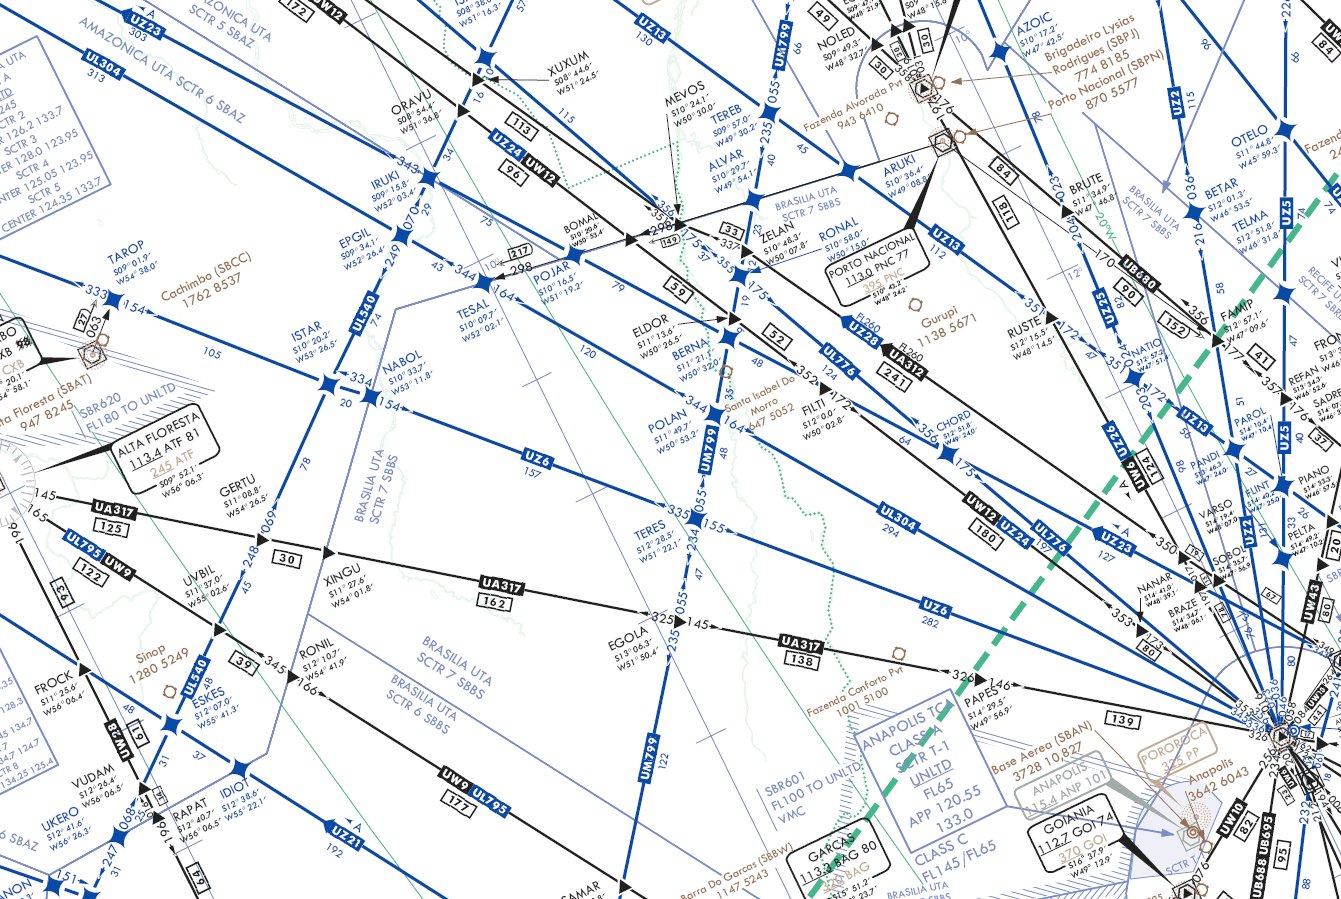 Aviation Weather Charts: IFR high altitude en route chart section - Teres - UZ6 airway ,Chart